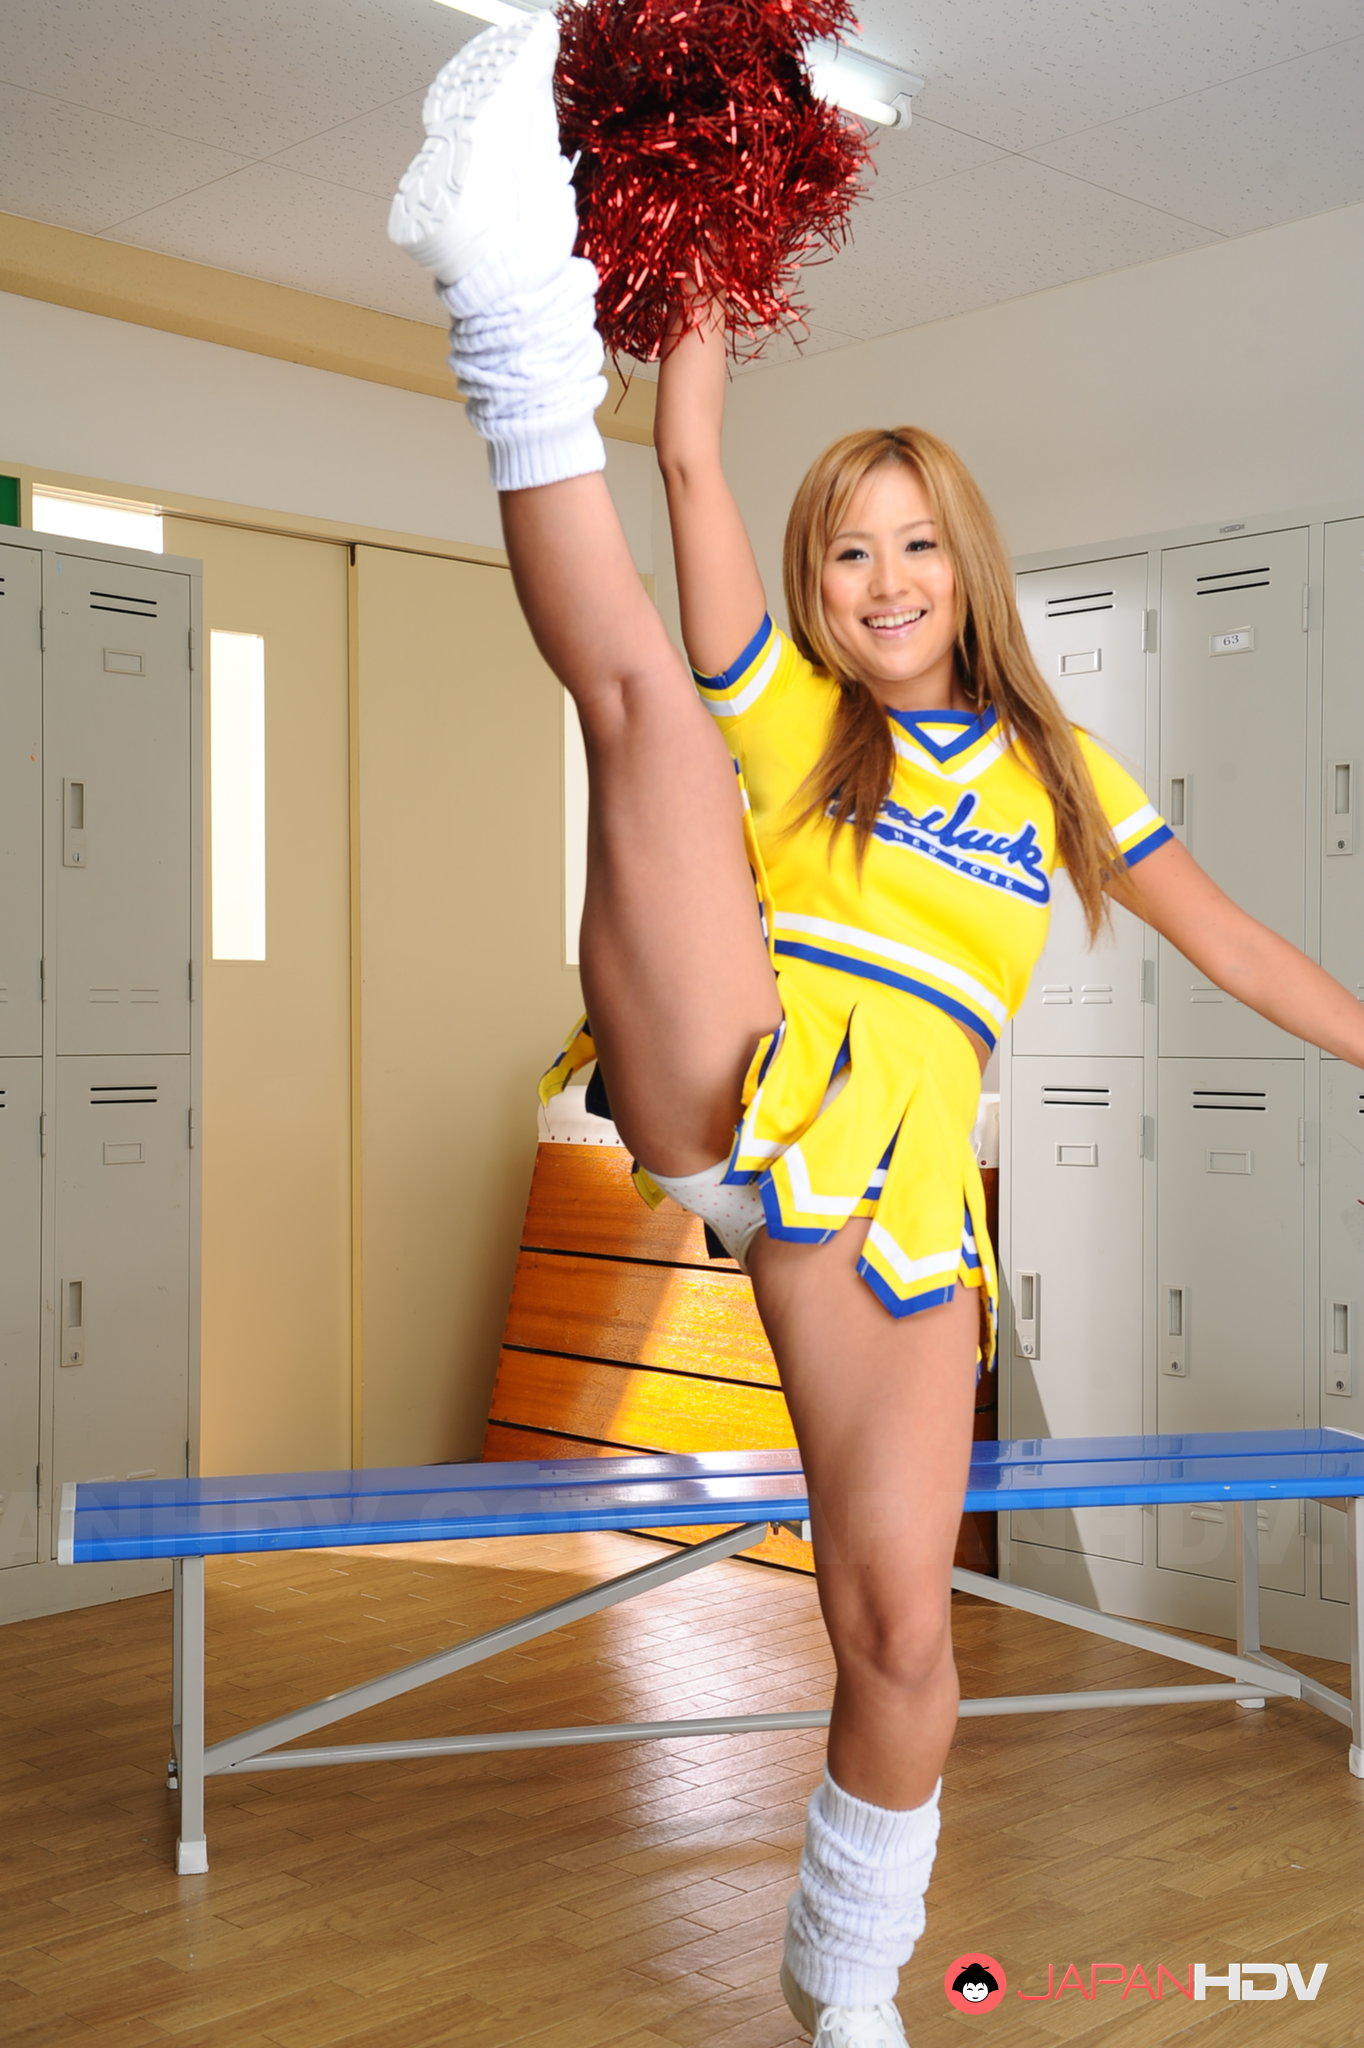 slutty highschool cheerleaders sex